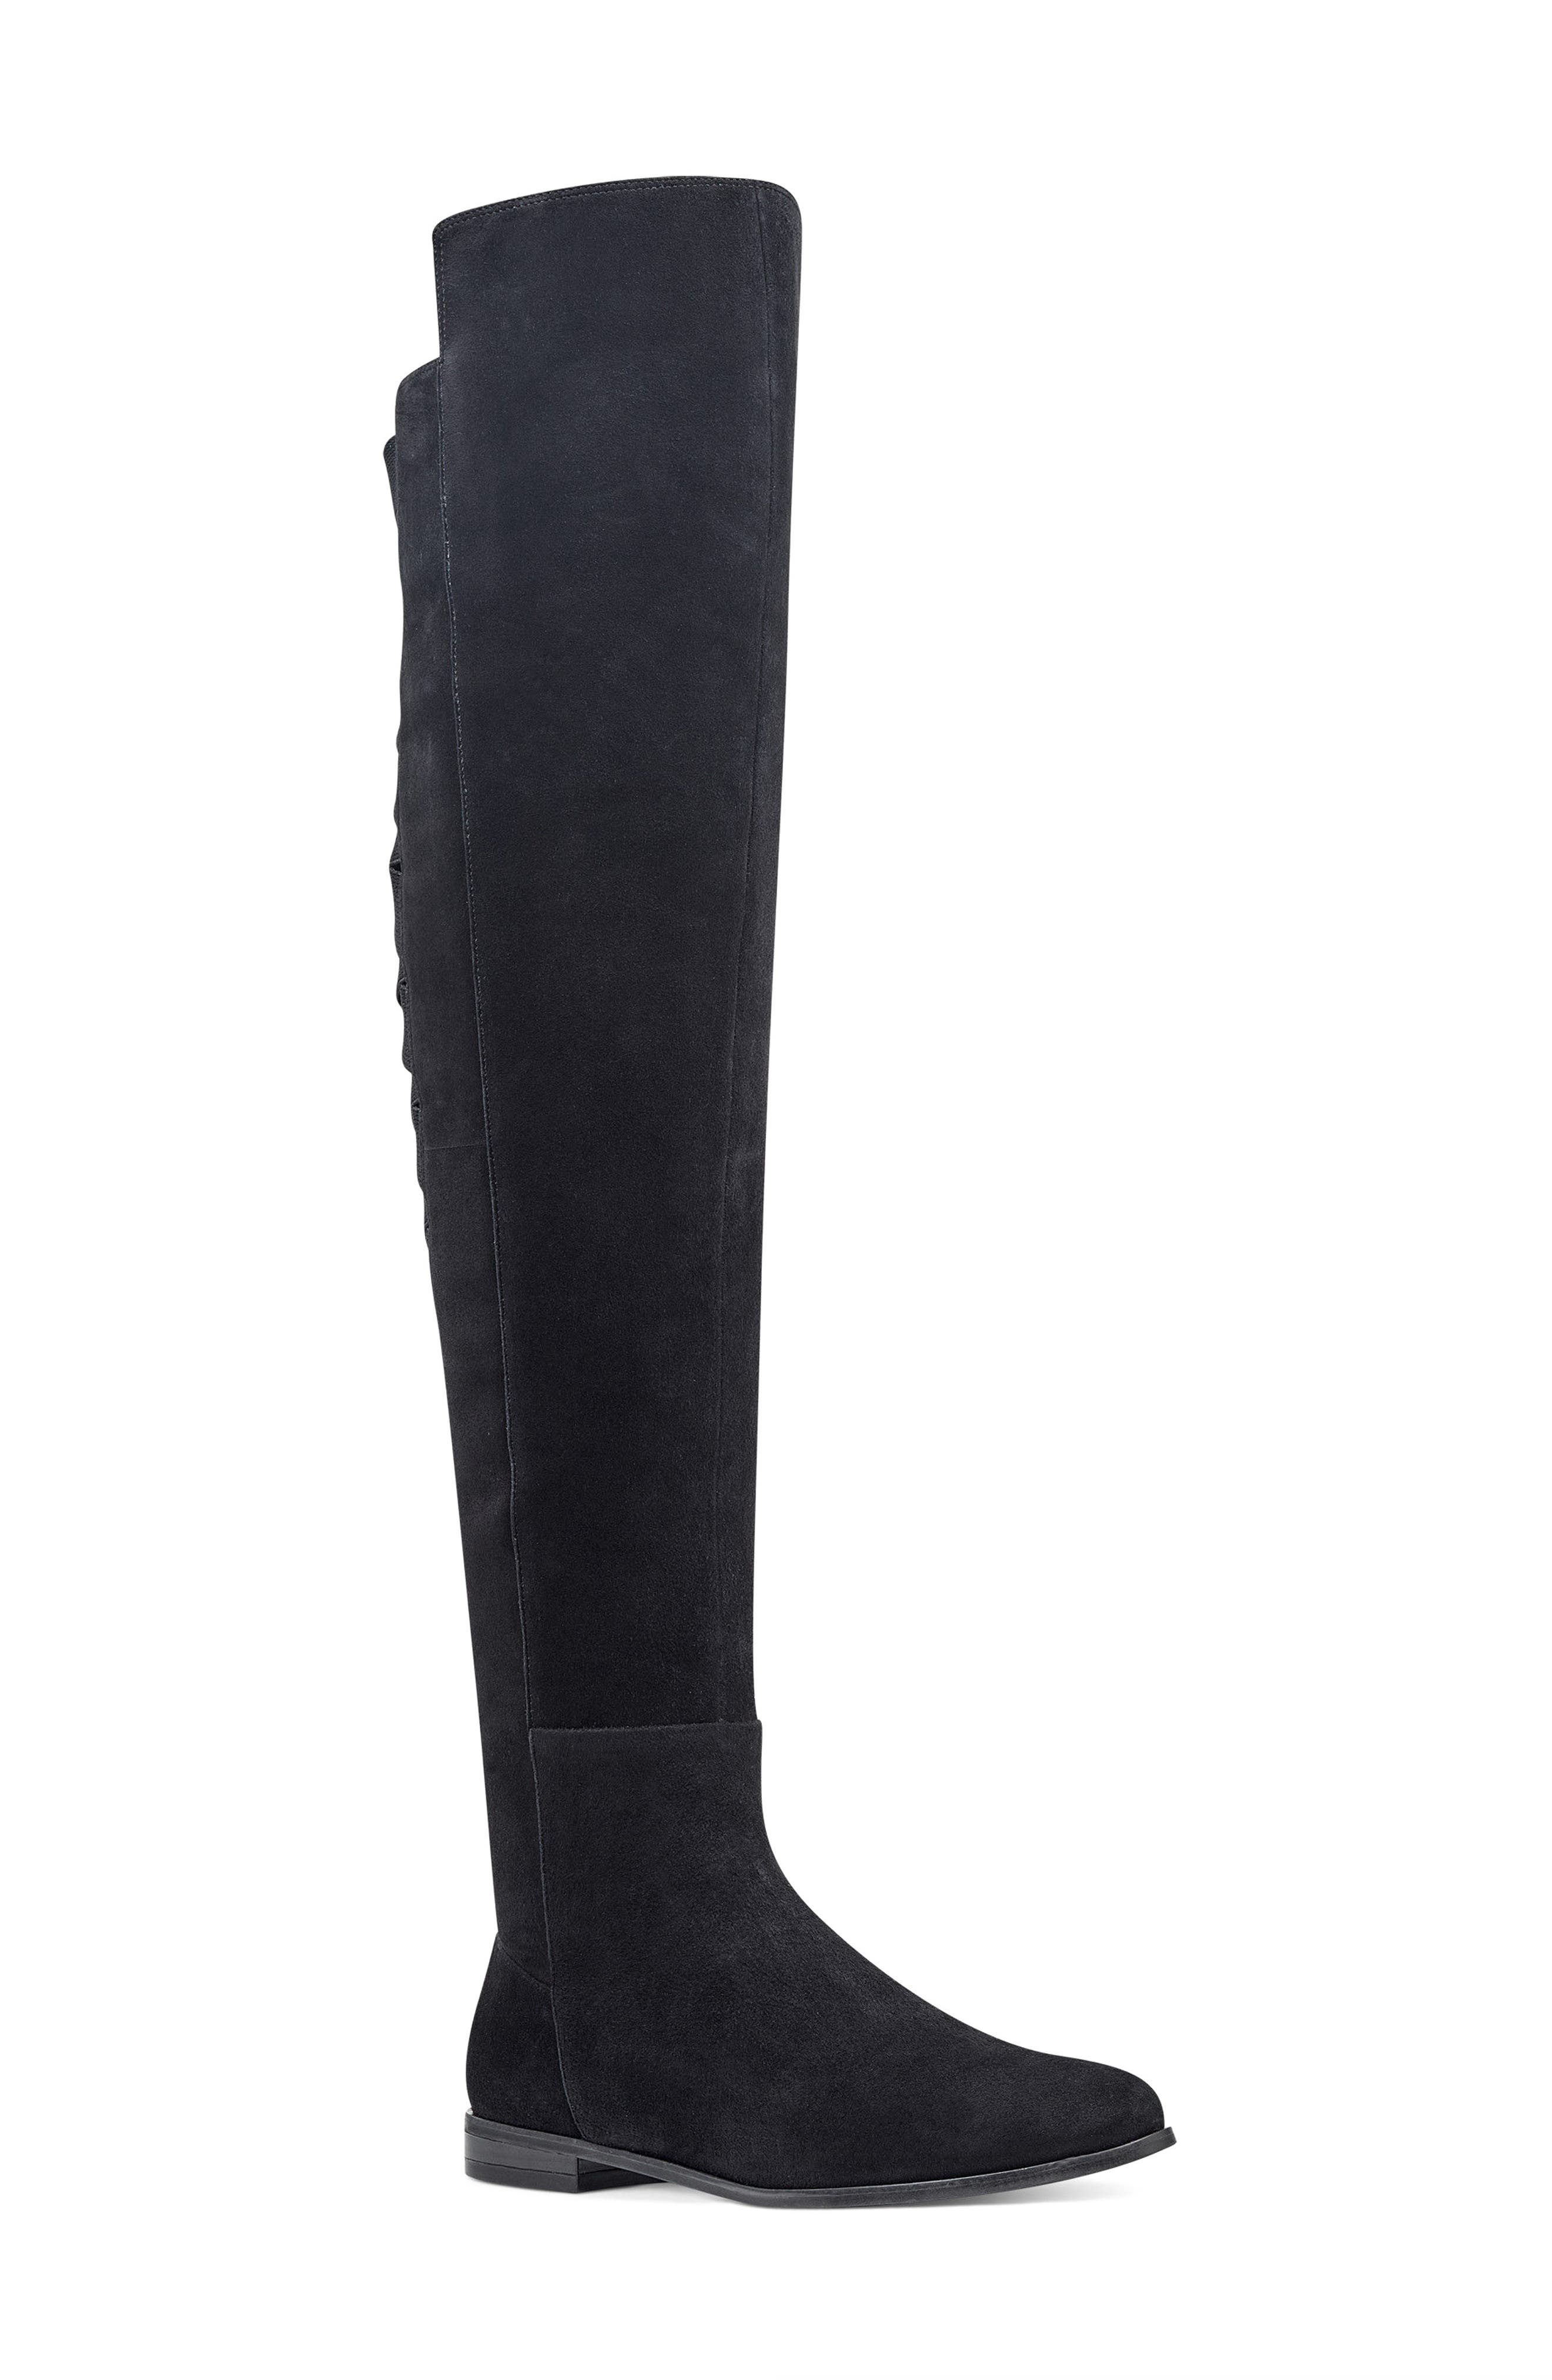 Eltynn Over the Knee Boot,                         Main,                         color, 001